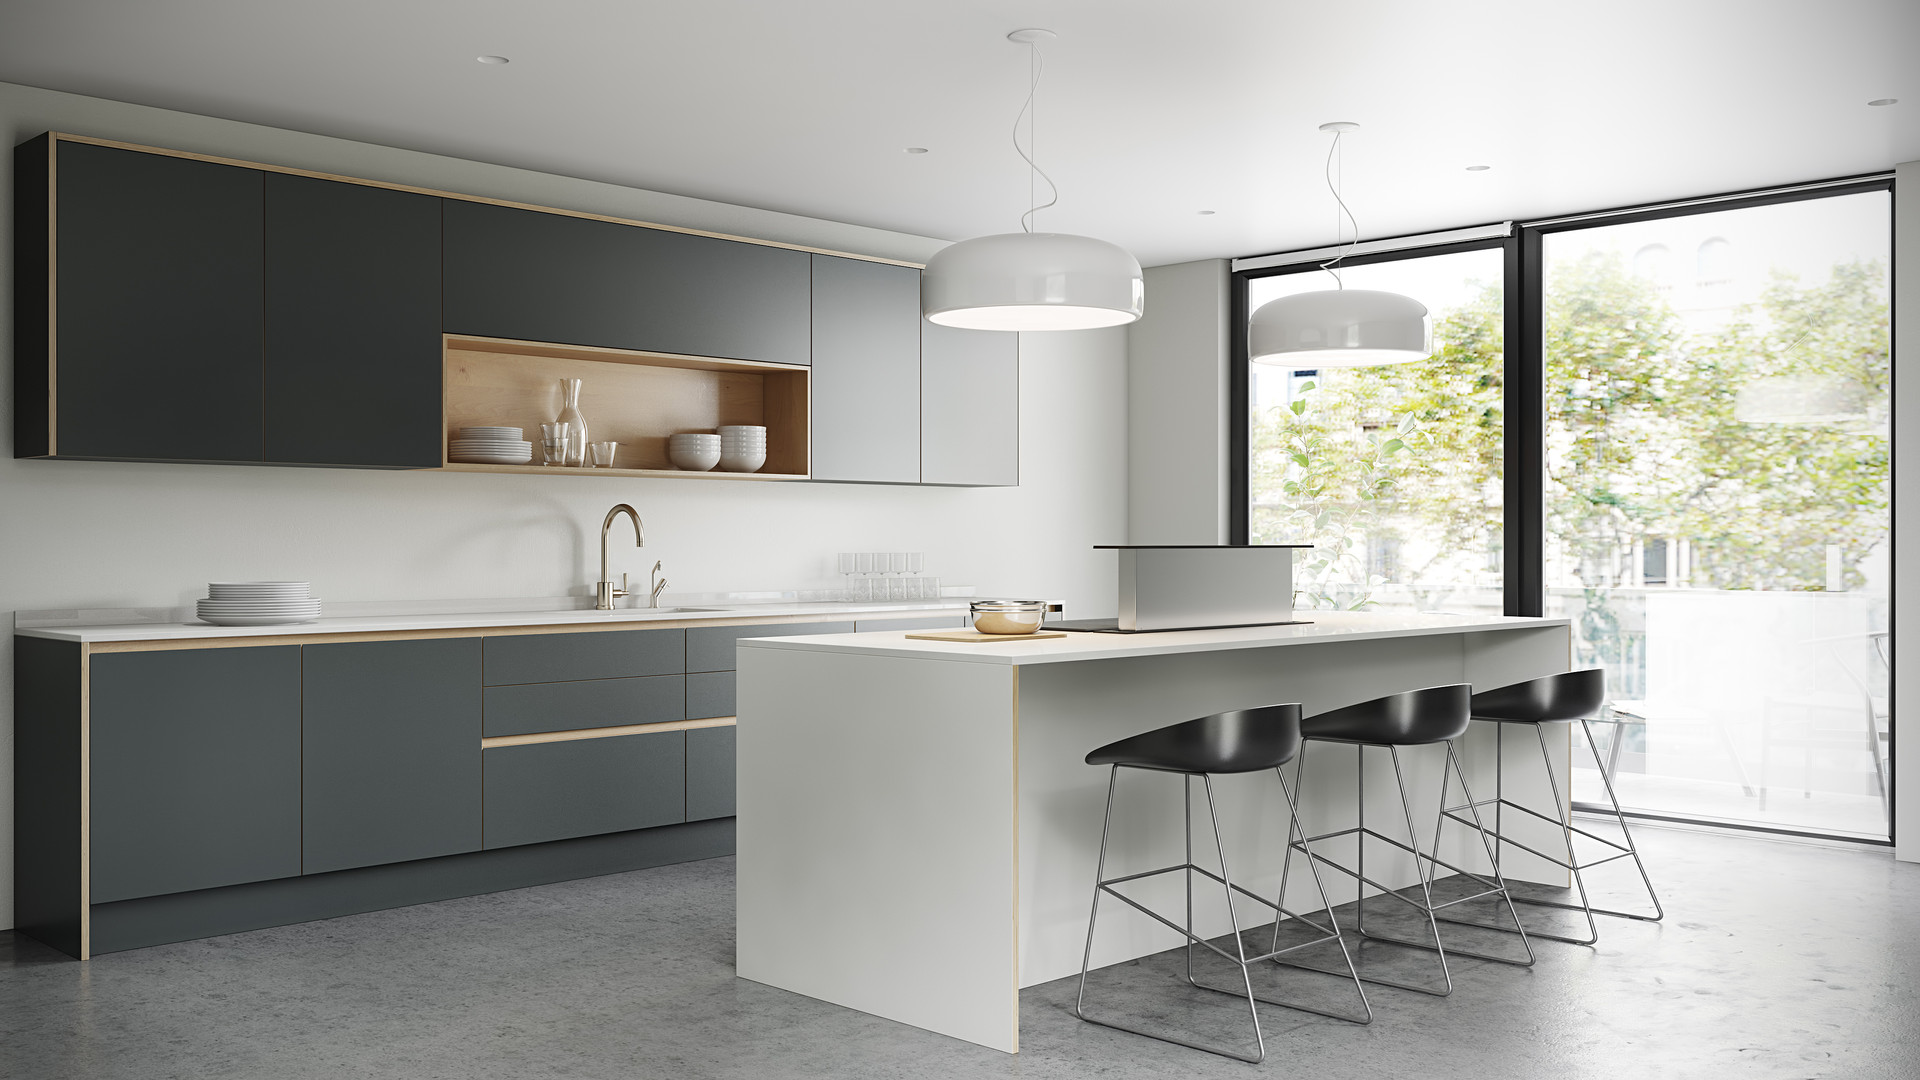 Plywood Painted Kitchen